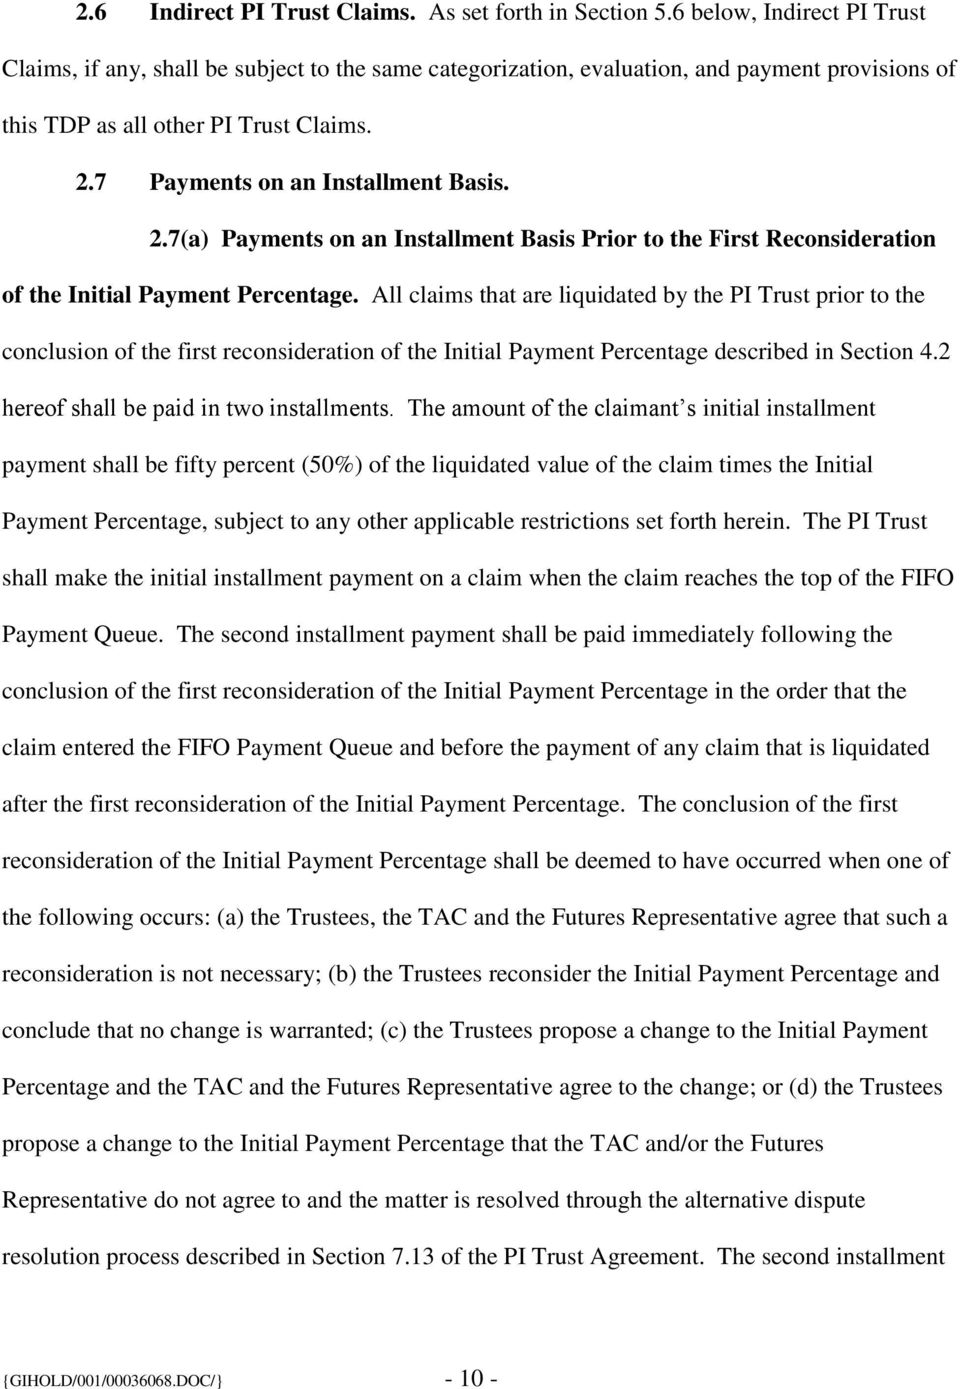 7 Payments on an Installment Basis. 2.7(a) Payments on an Installment Basis Prior to the First Reconsideration of the Initial Payment Percentage.